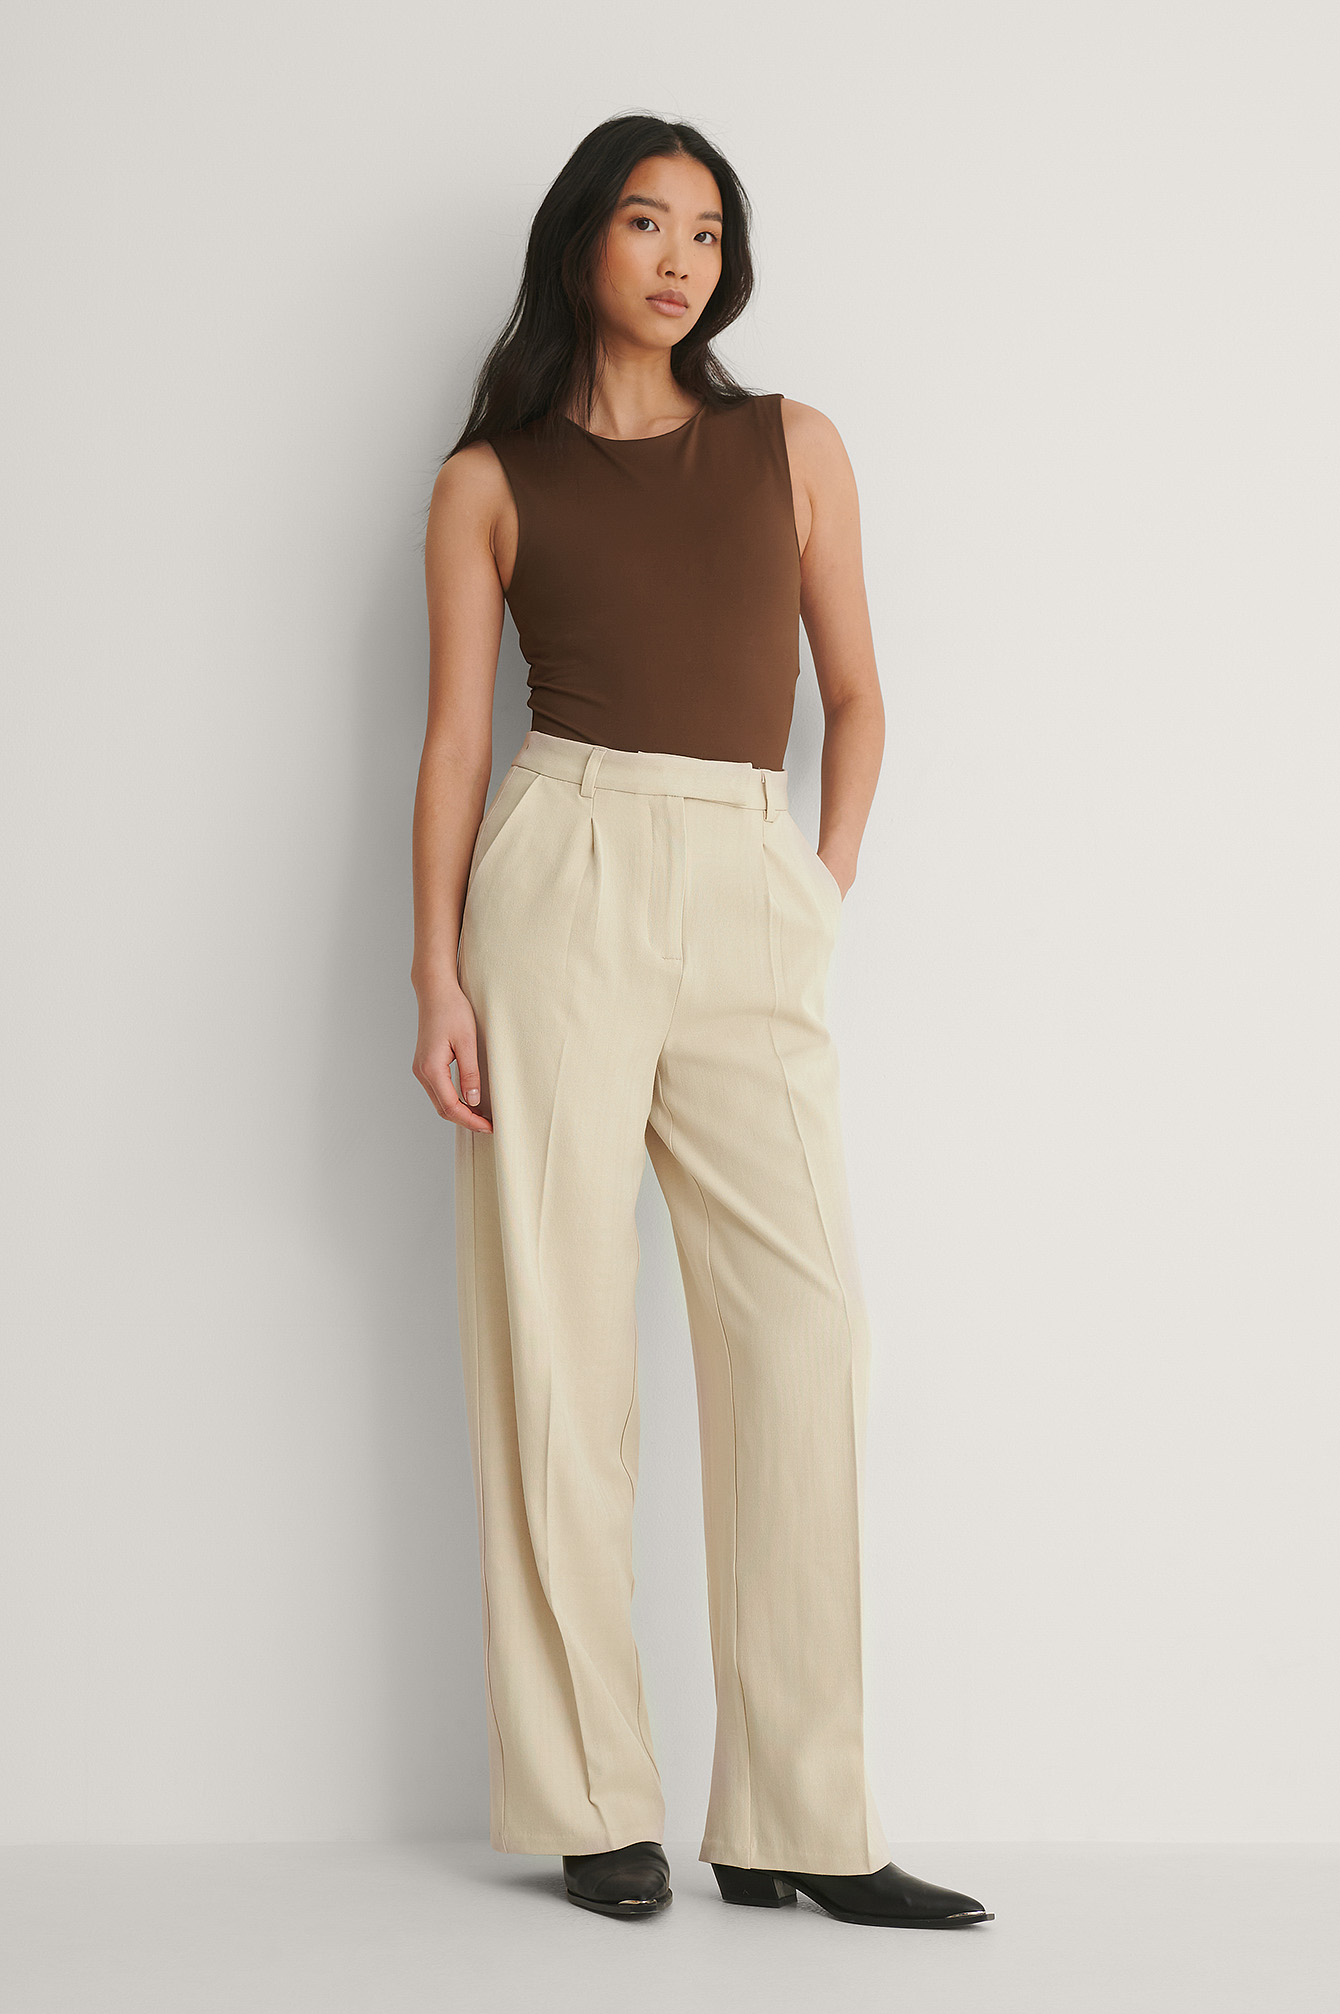 Warm Beige Recycled Wide Leg Pants